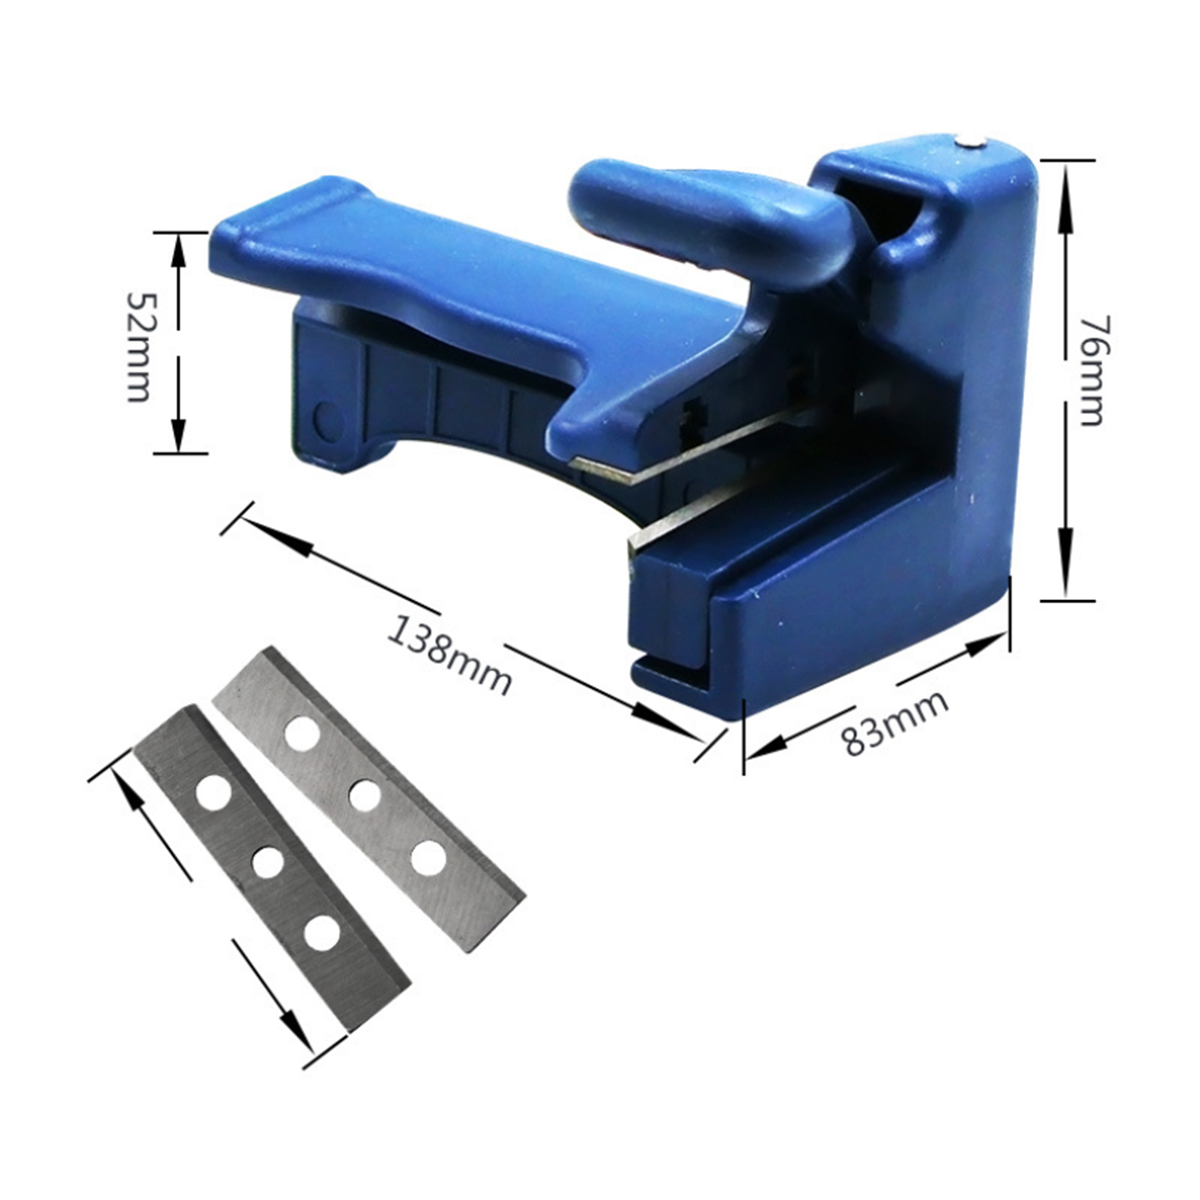 Double Edge Trimmer Manual Edge Bending Cutter Wood Head And Tail Trimming Carpenter Hardware Machine Set